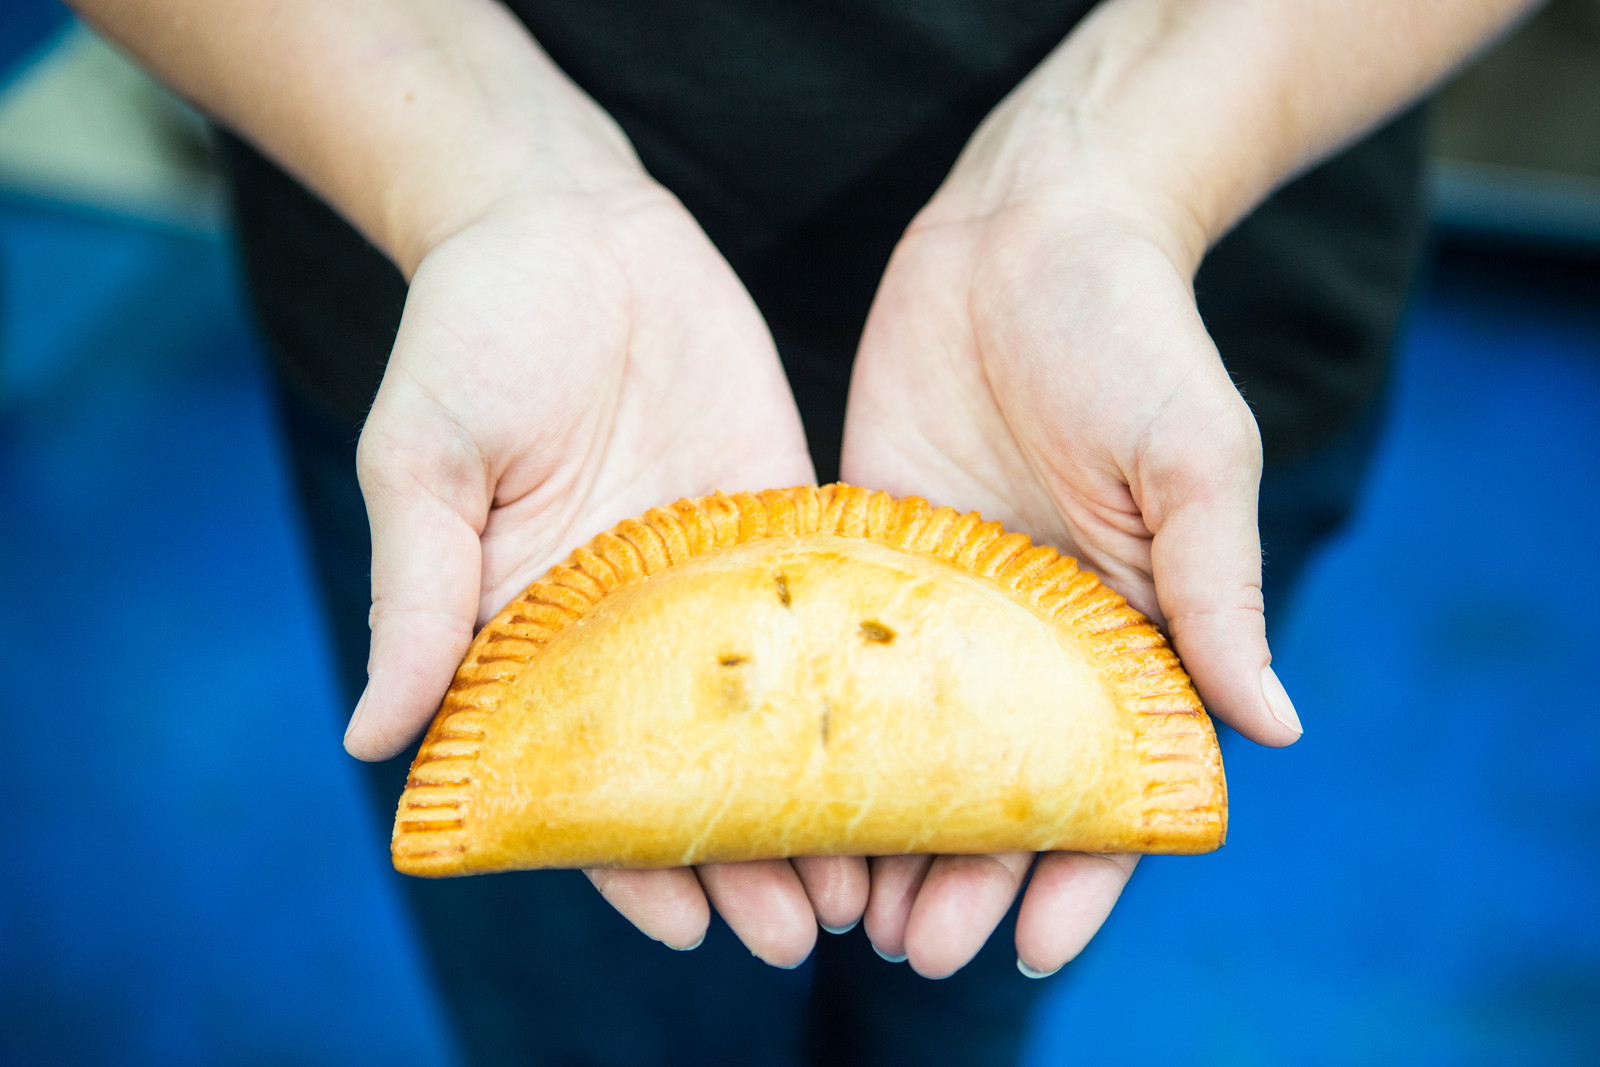 HEB Grocery Will Add Austin Food Truck's Empanadas